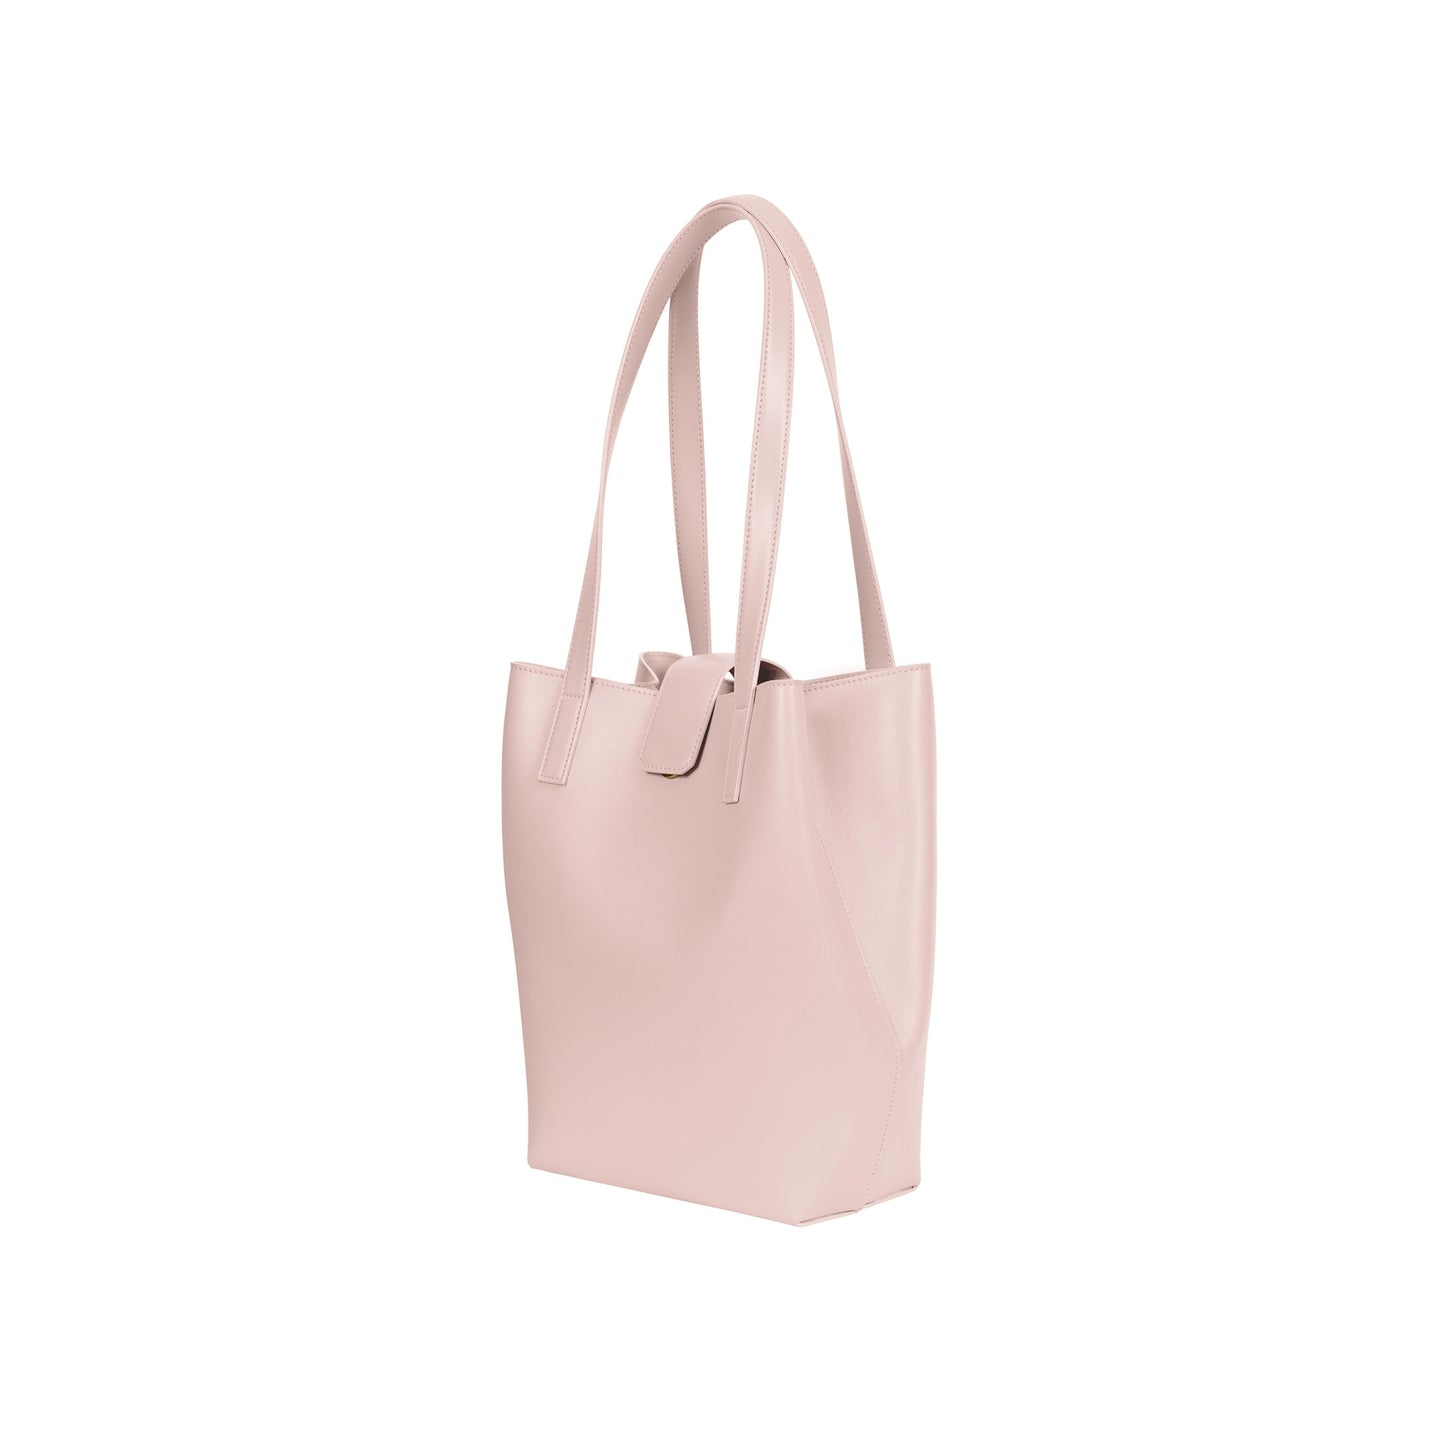 La Borsa Tote Bucket Bag